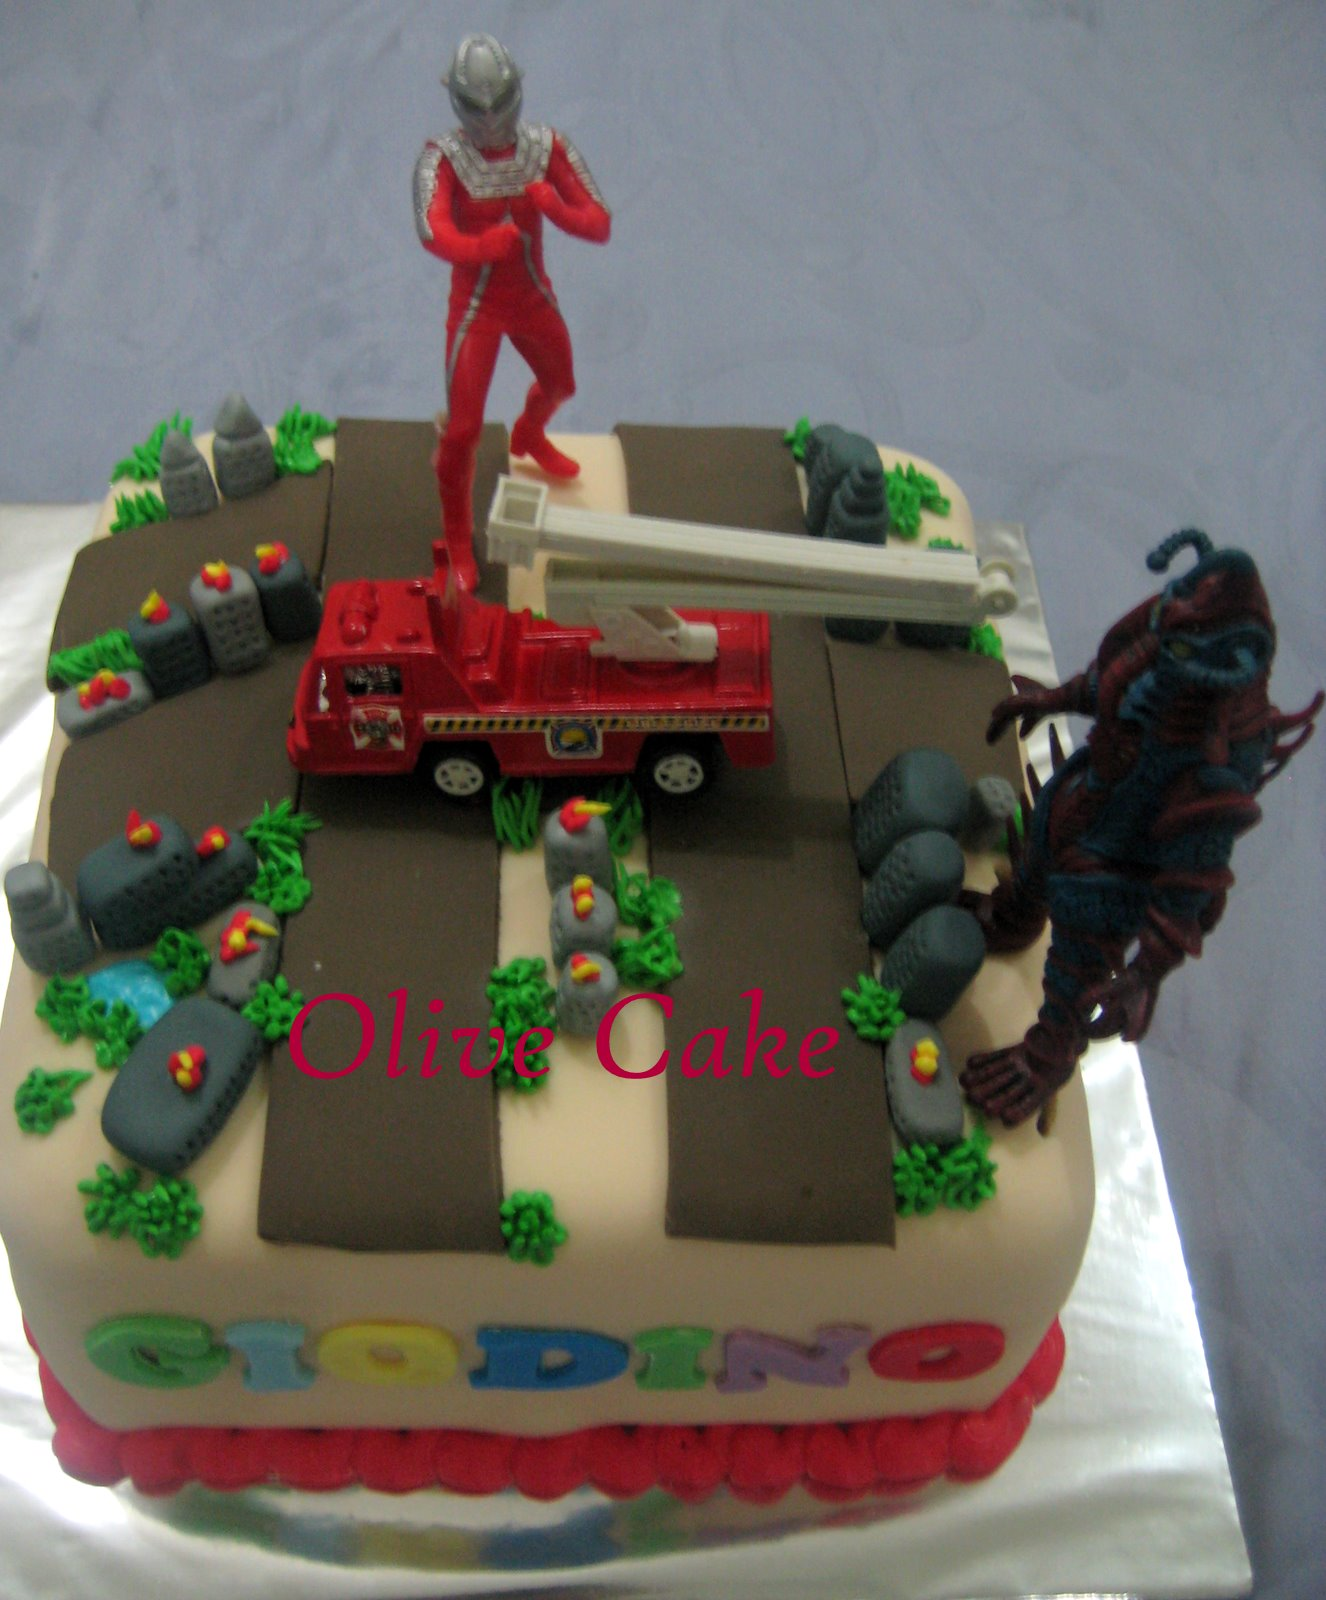 Pin Ultraman Edible Cake Butter Choc With Sugar Icing Customer Cake on ...